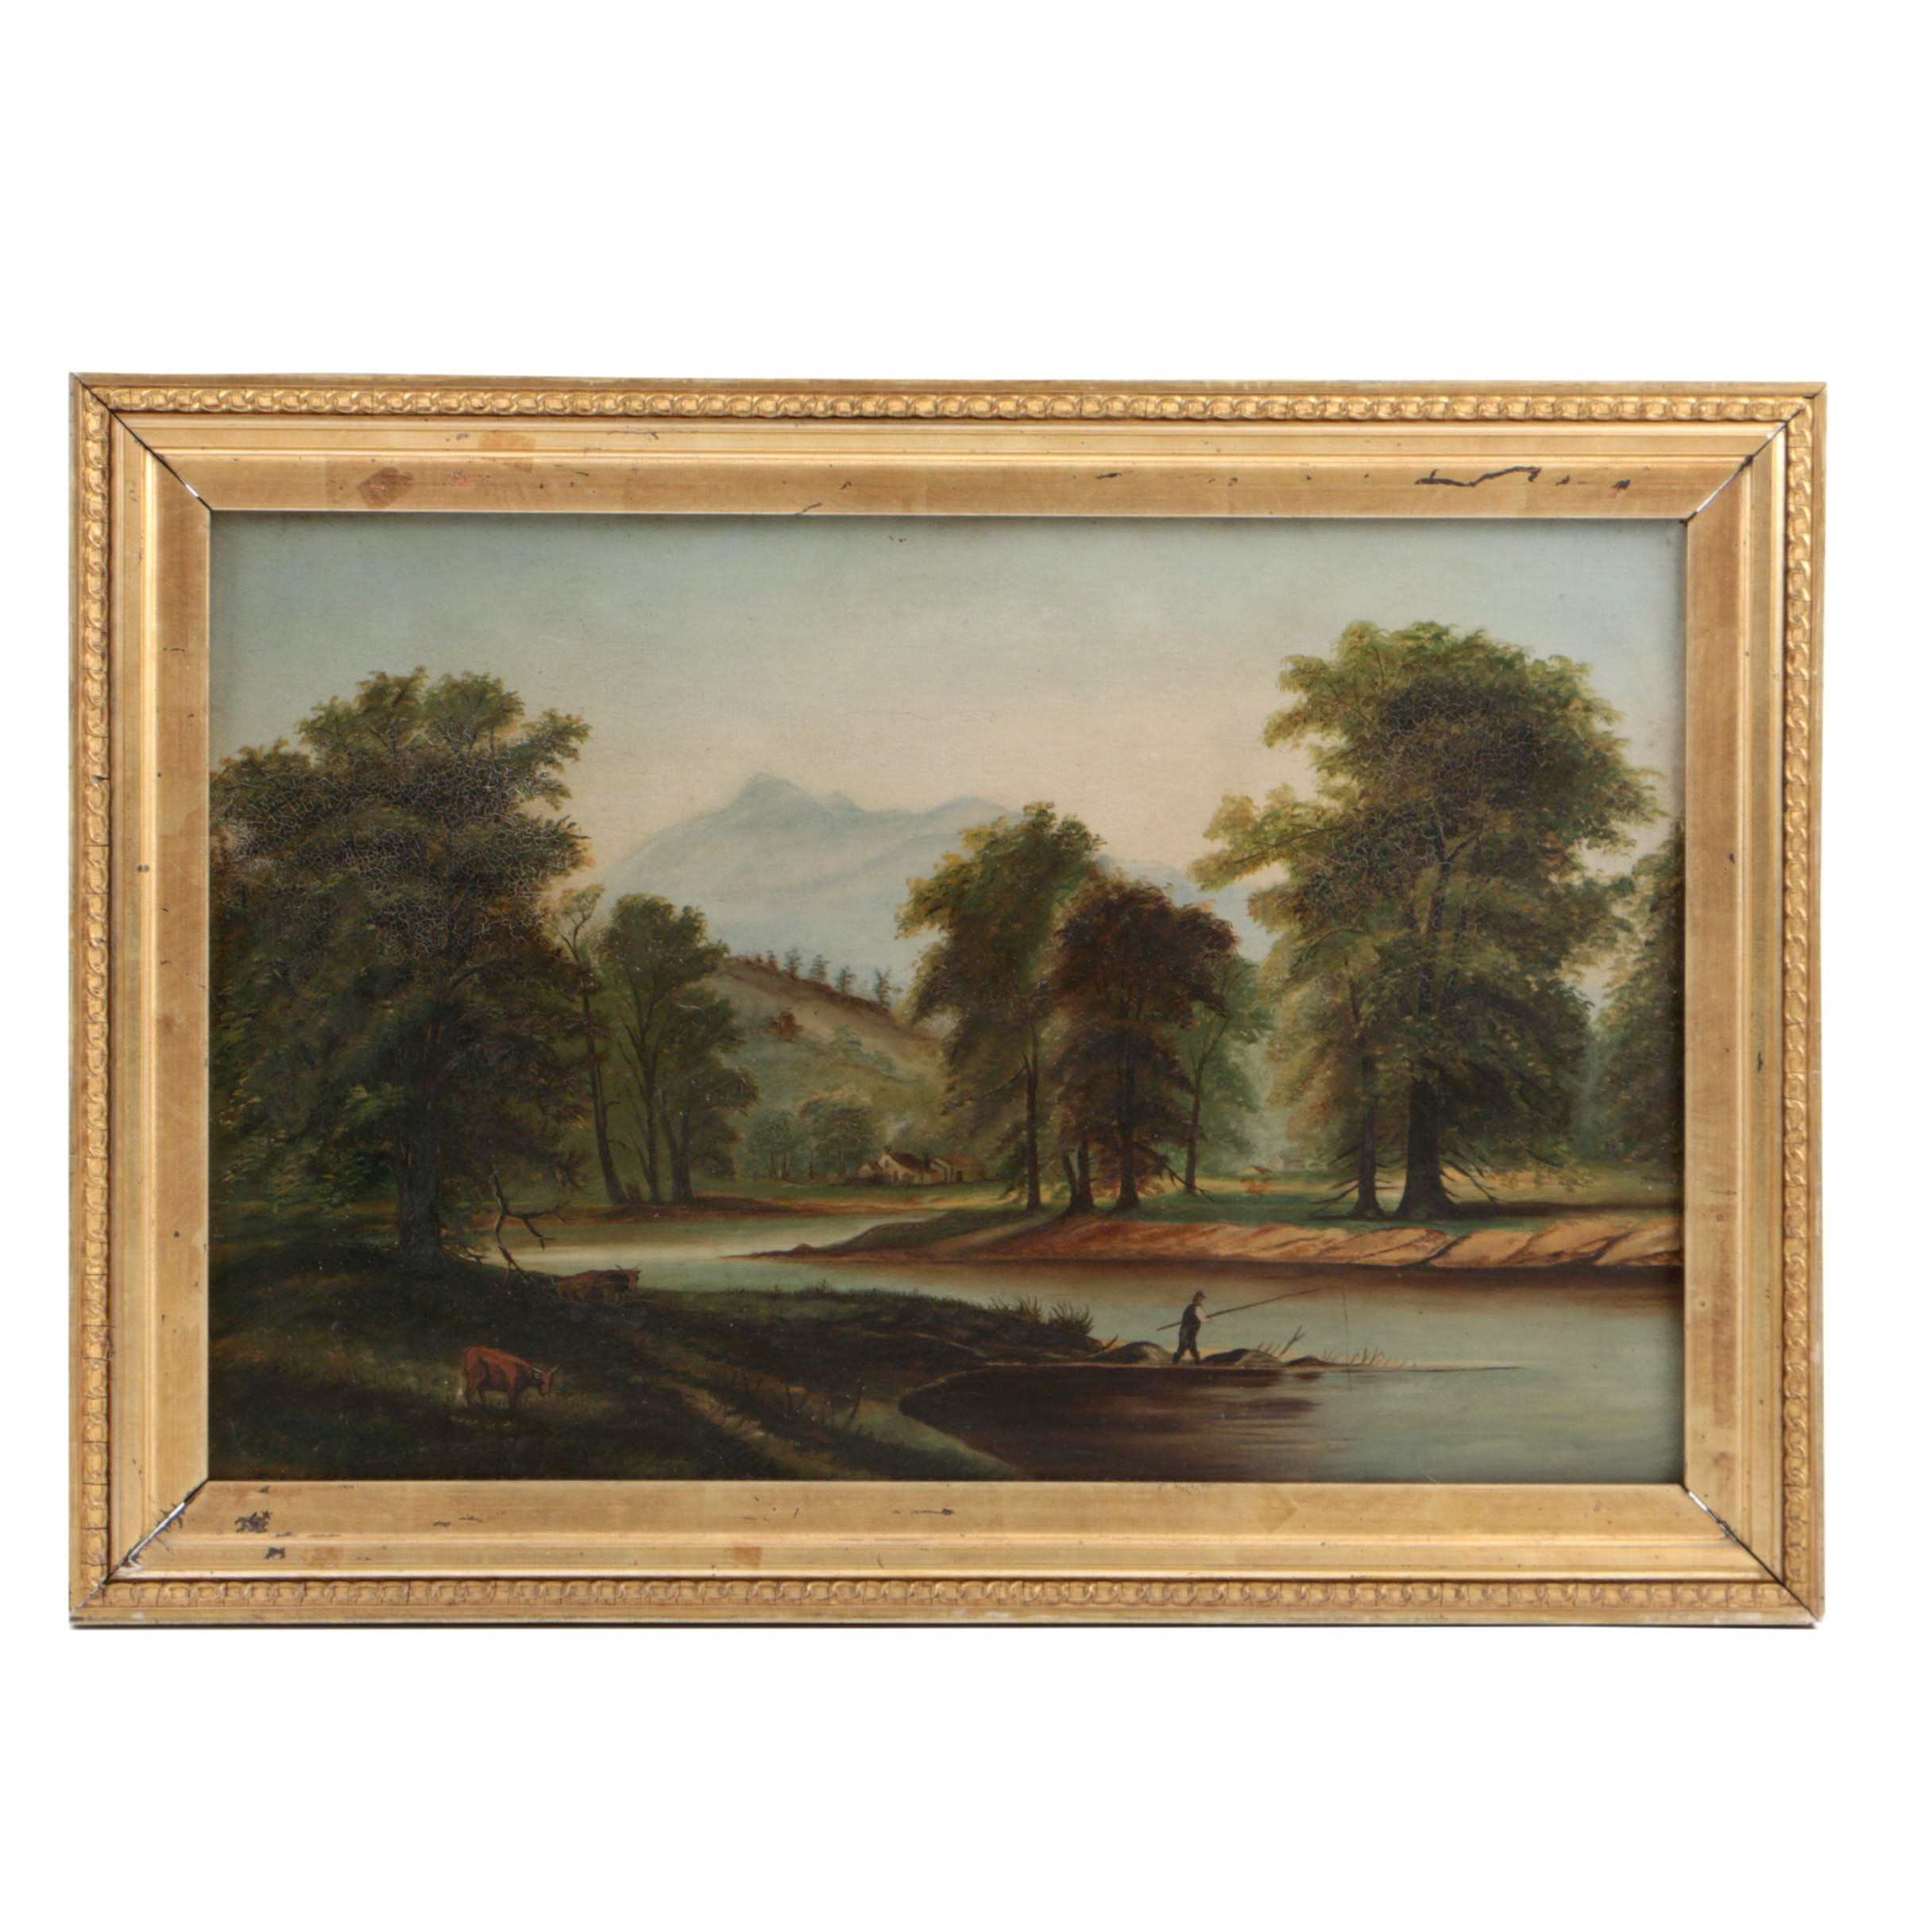 18th Century English School Oil Painting on Board of Pastoral Landscape